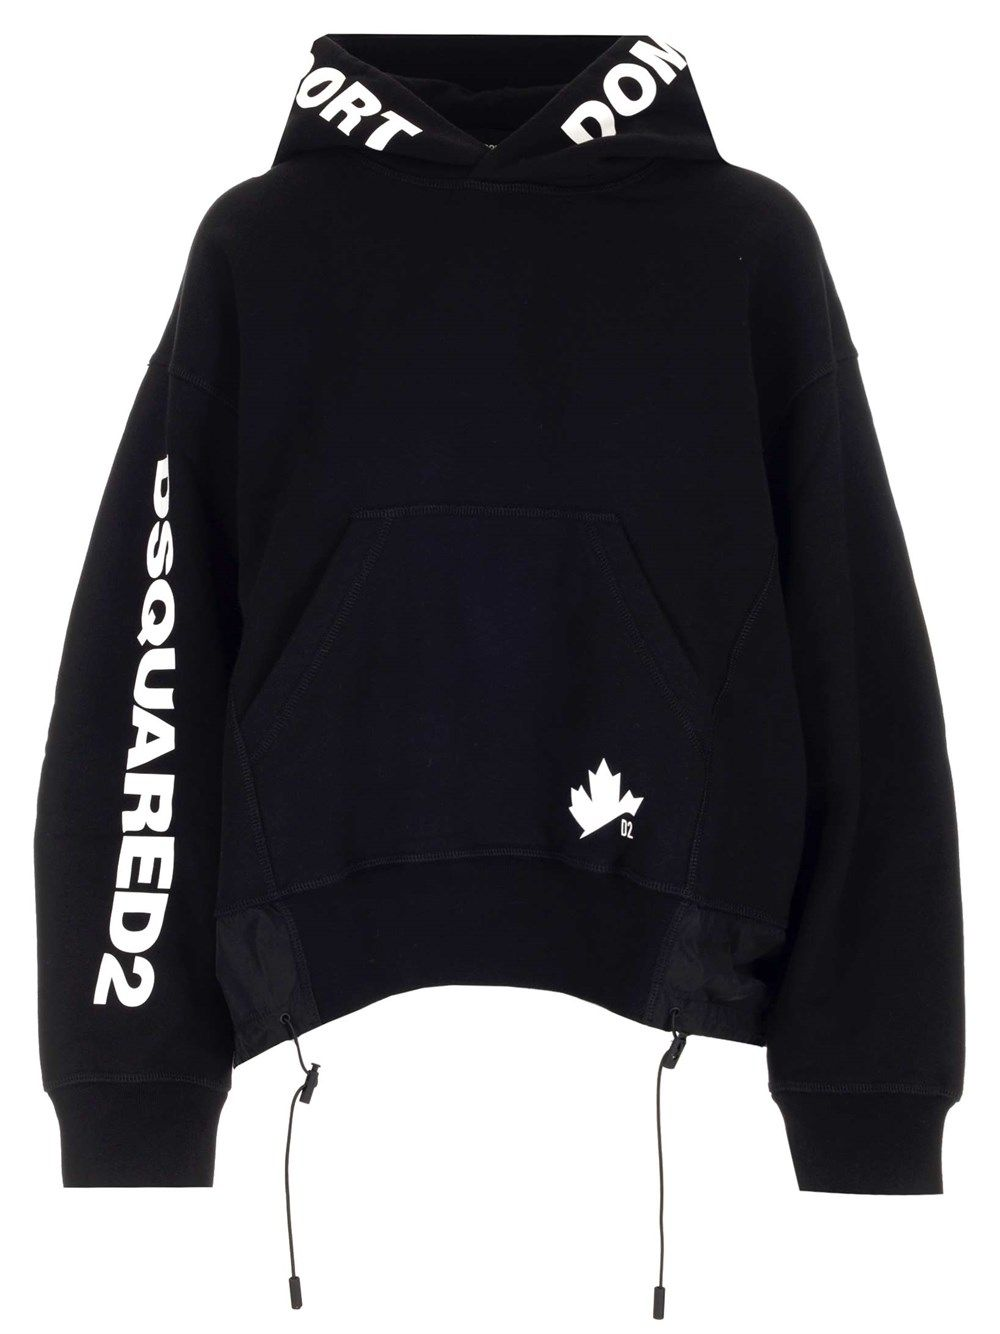 Dsquared2 DSQUARED2 WOMEN'S BLACK OTHER MATERIALS SWEATSHIRT